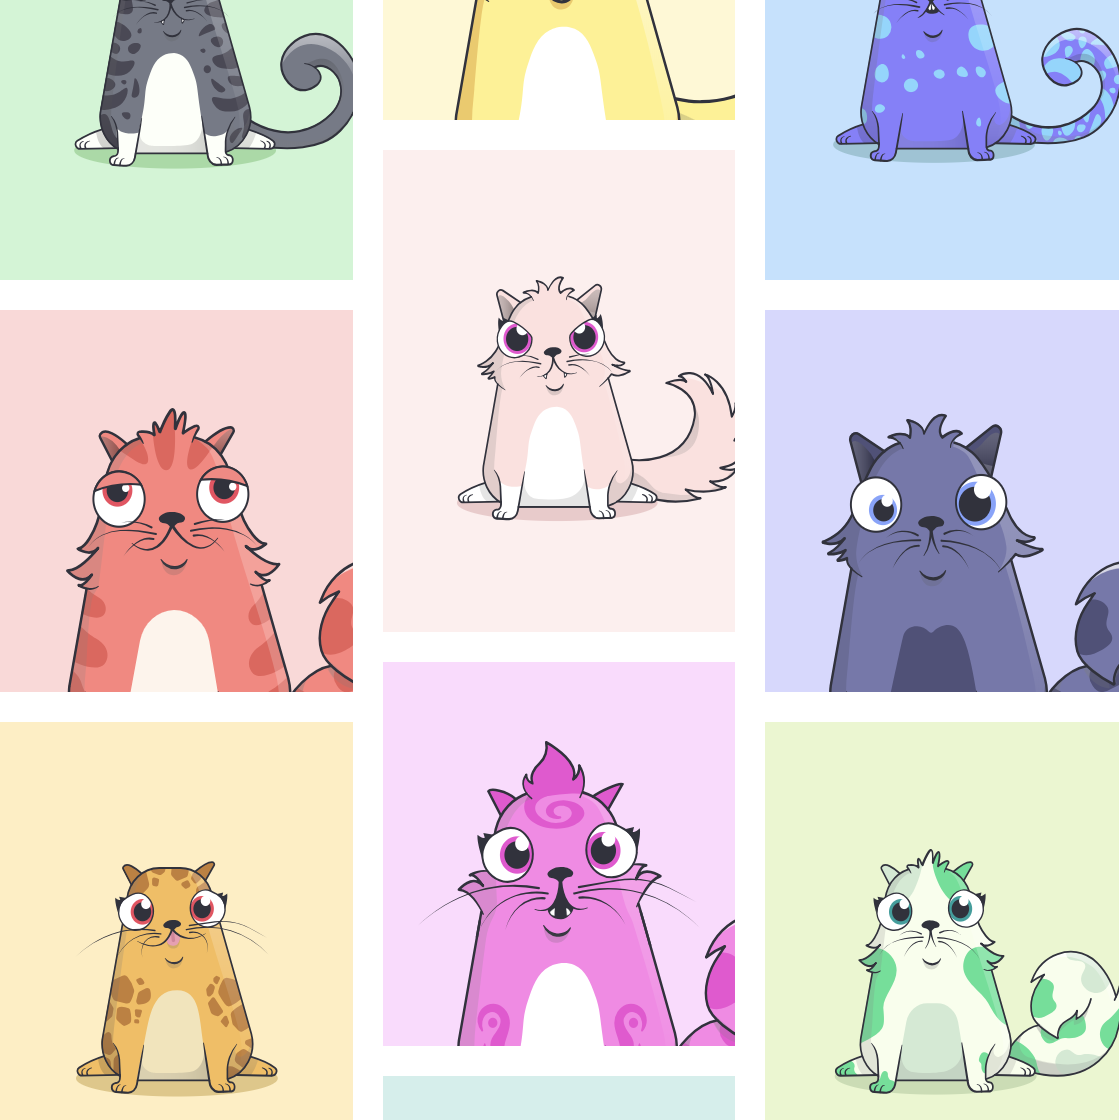 cryptokitties.png